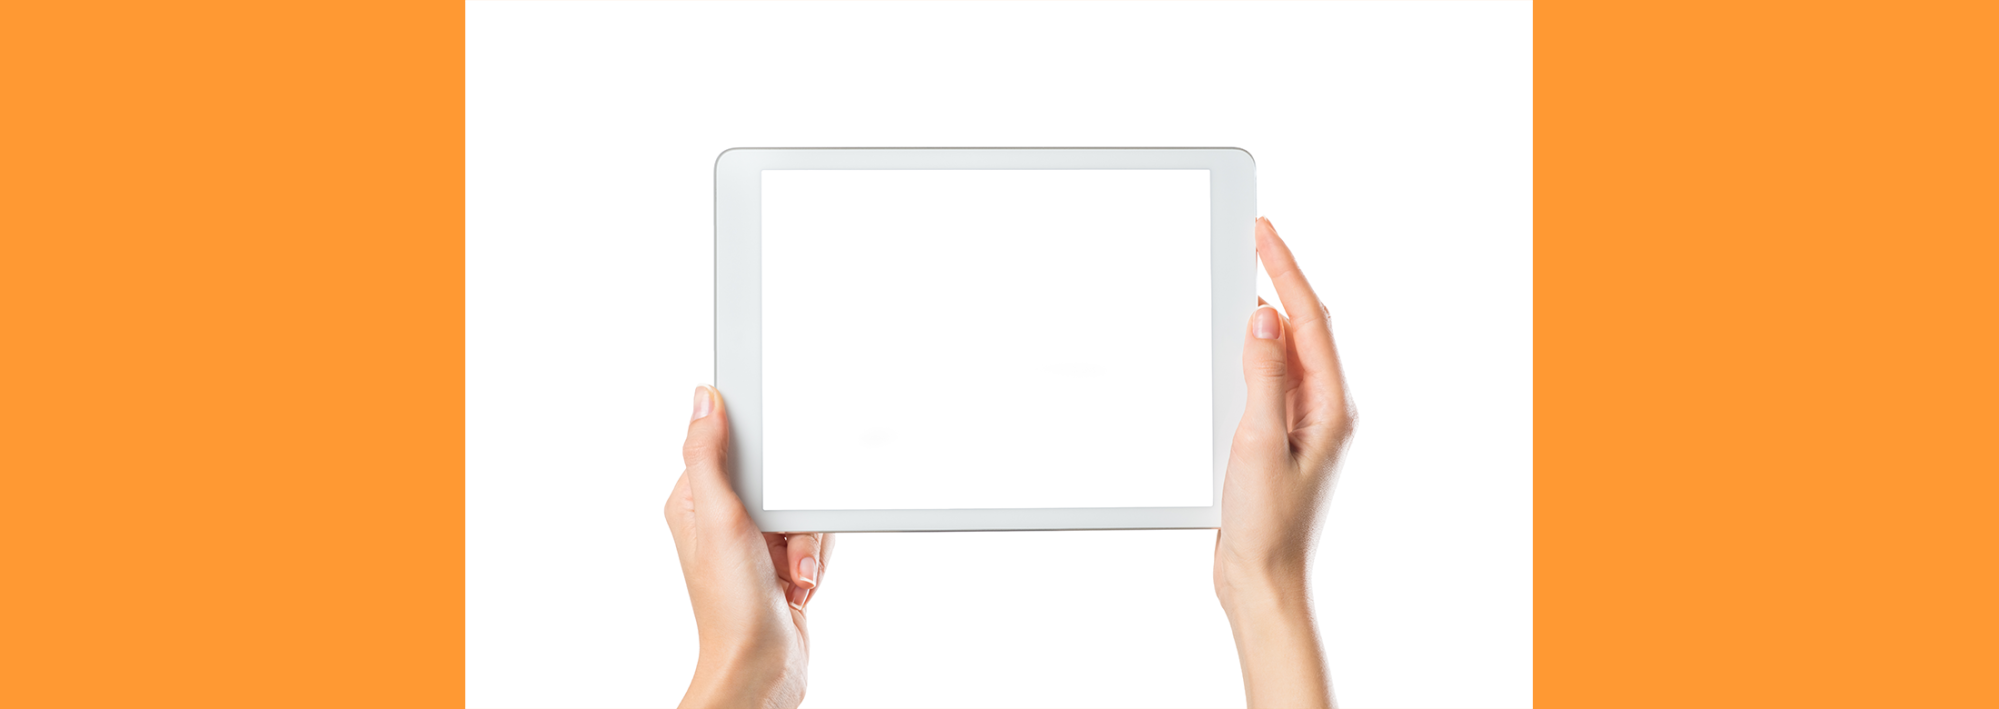 A blank IPAD offering a world of digital communications